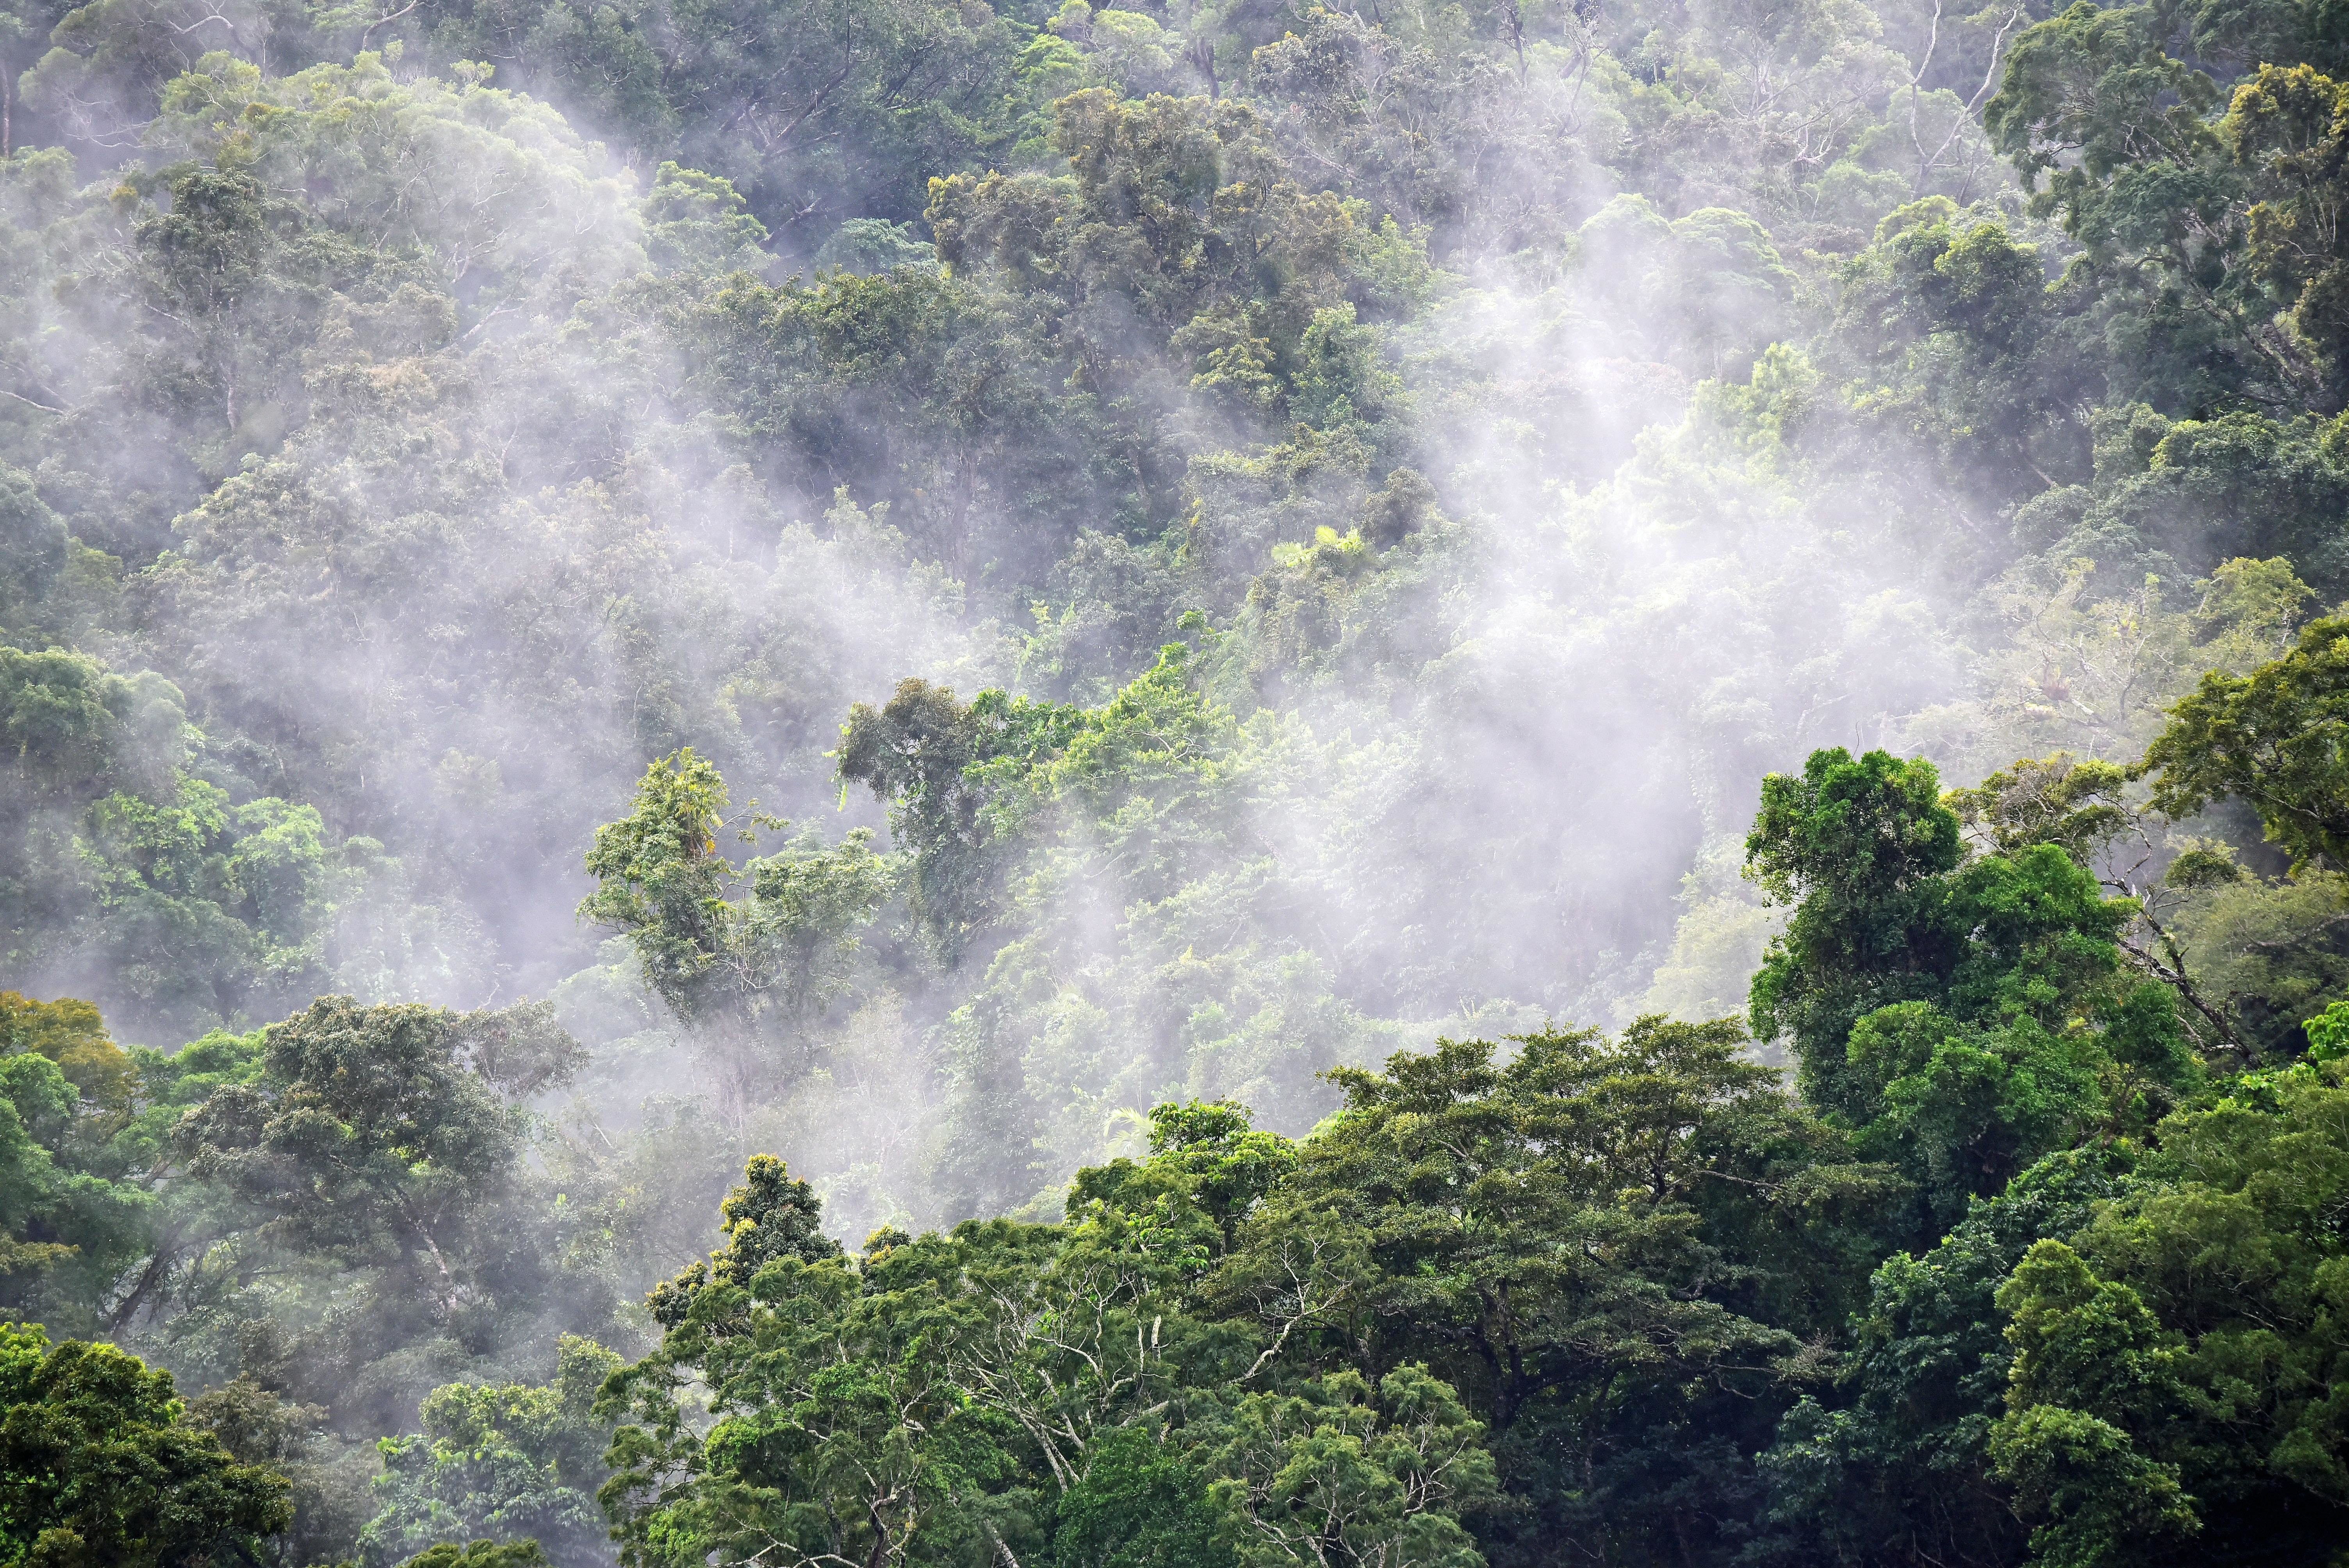 View of rainforest canopy.